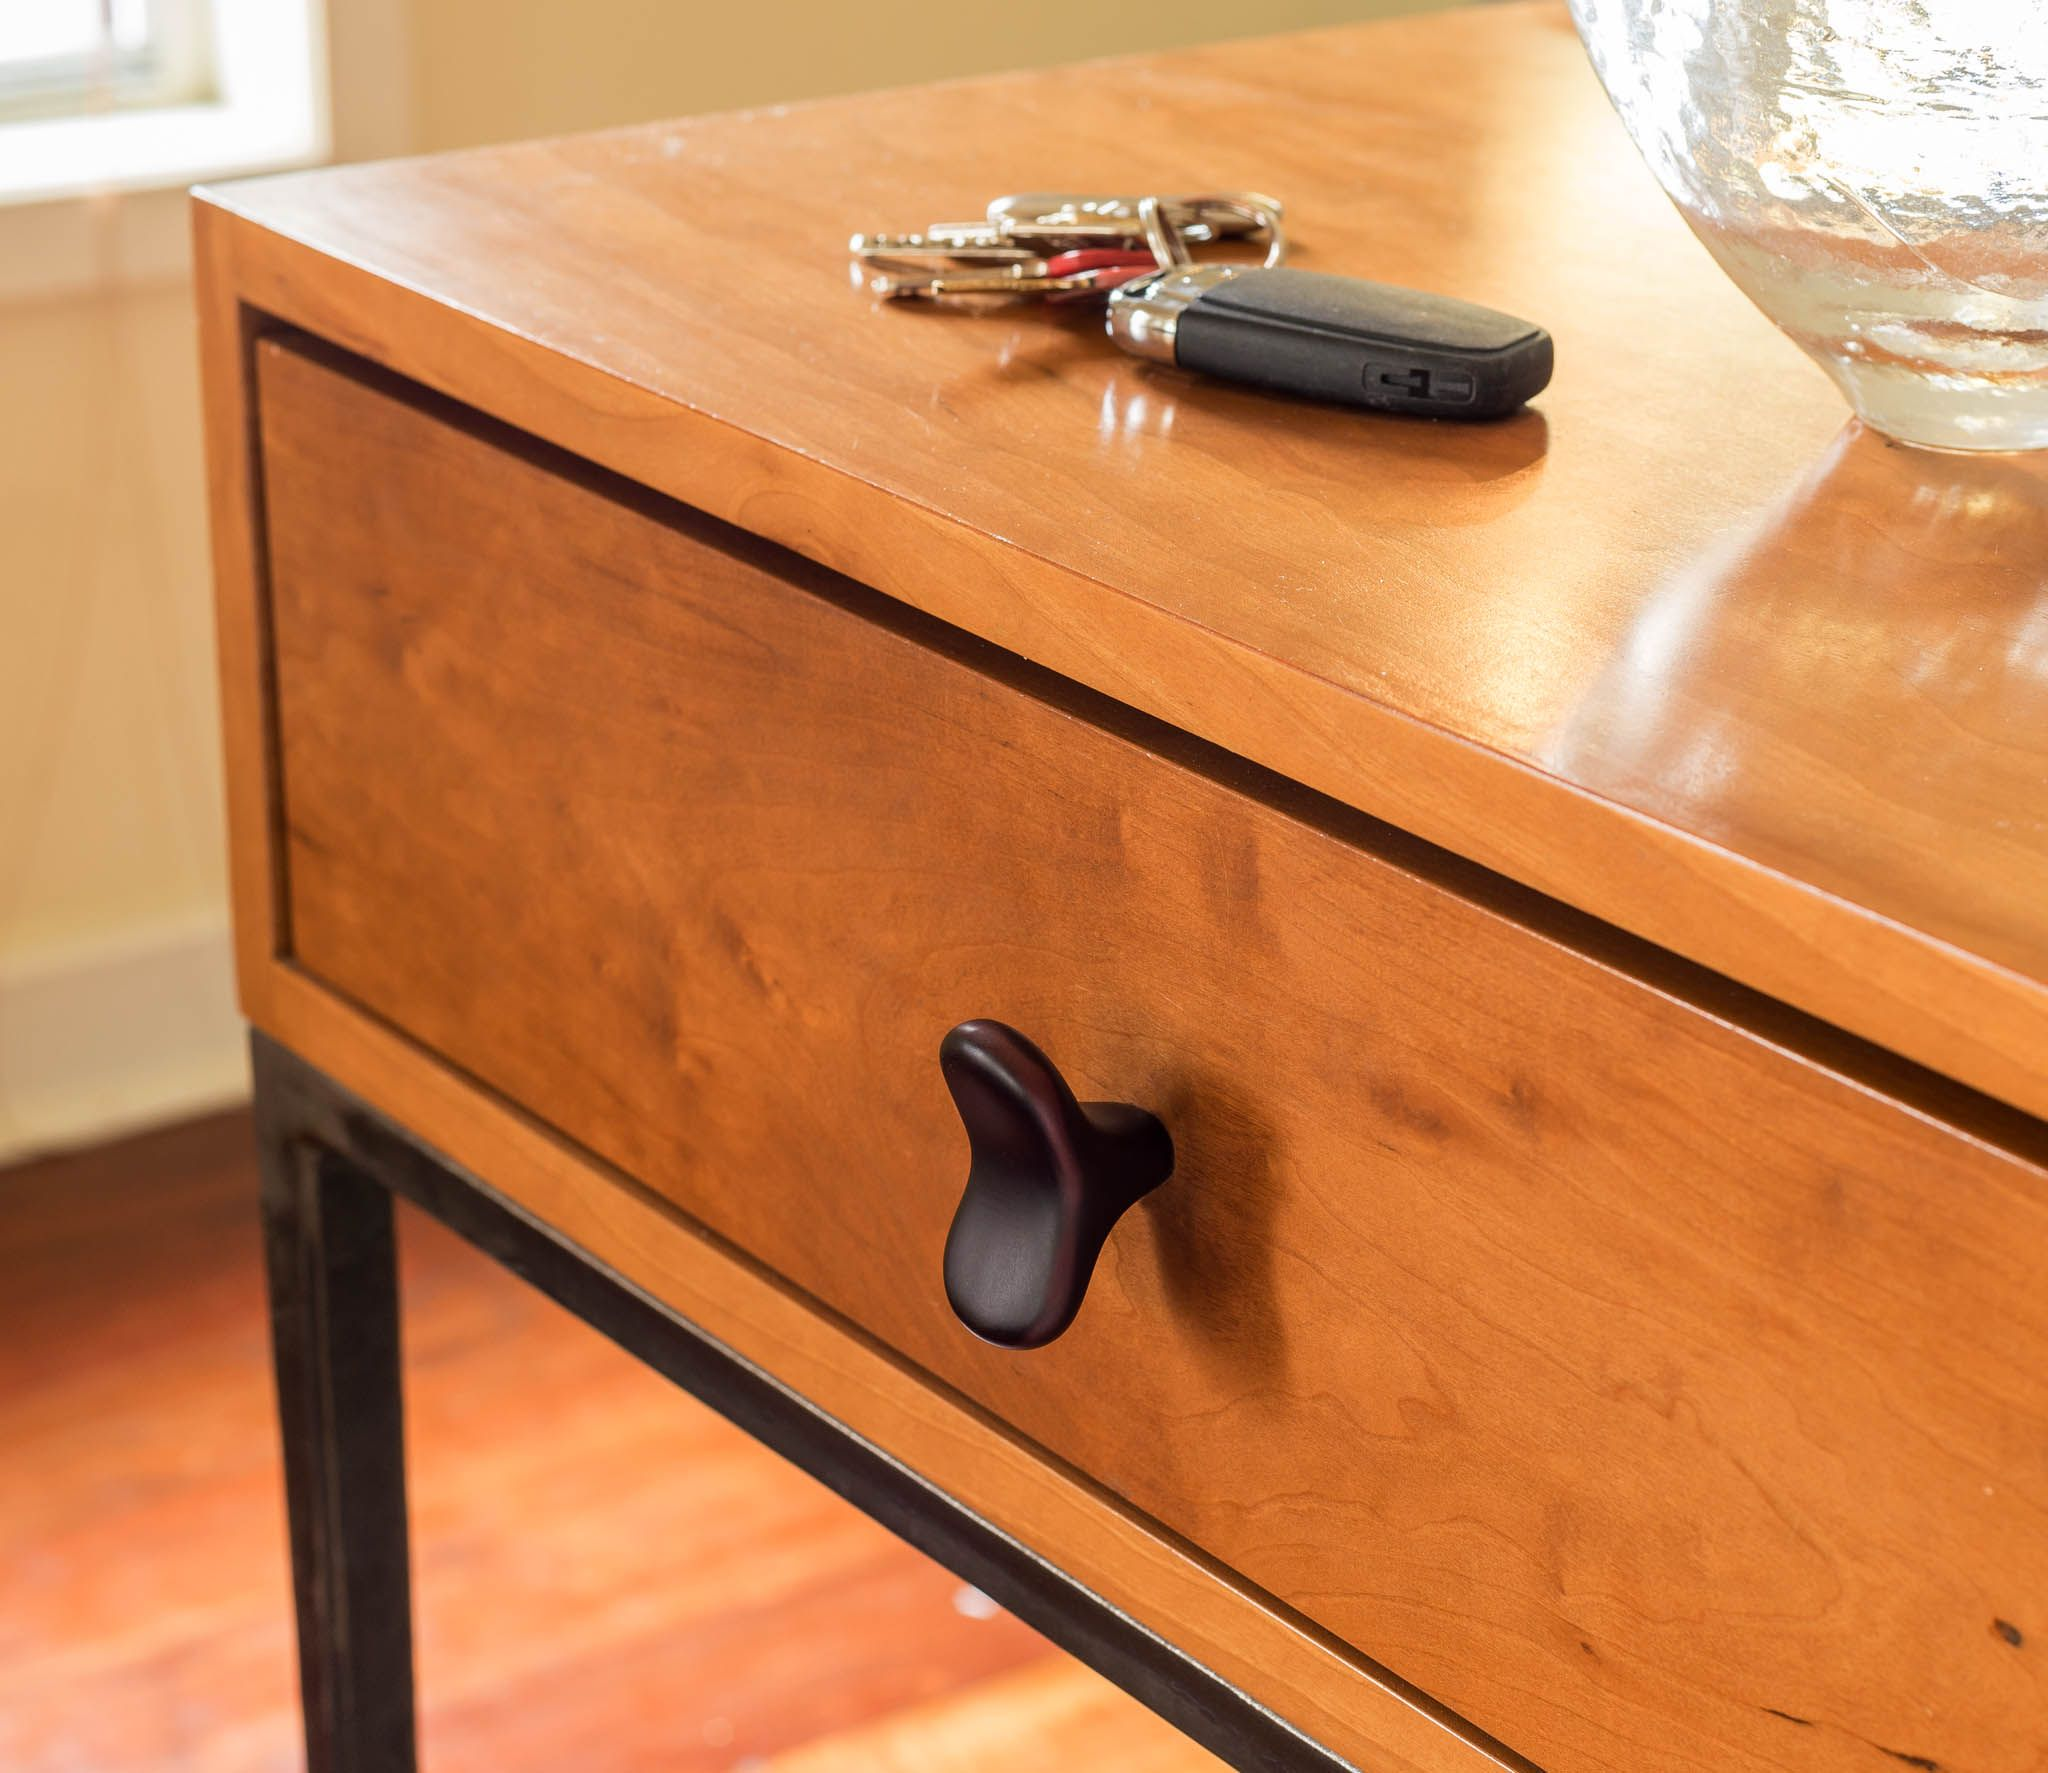 liberty pull placement how to hardware screws cabinets drawer on knobs knob cabinet and template pulls kitchen jig install wall